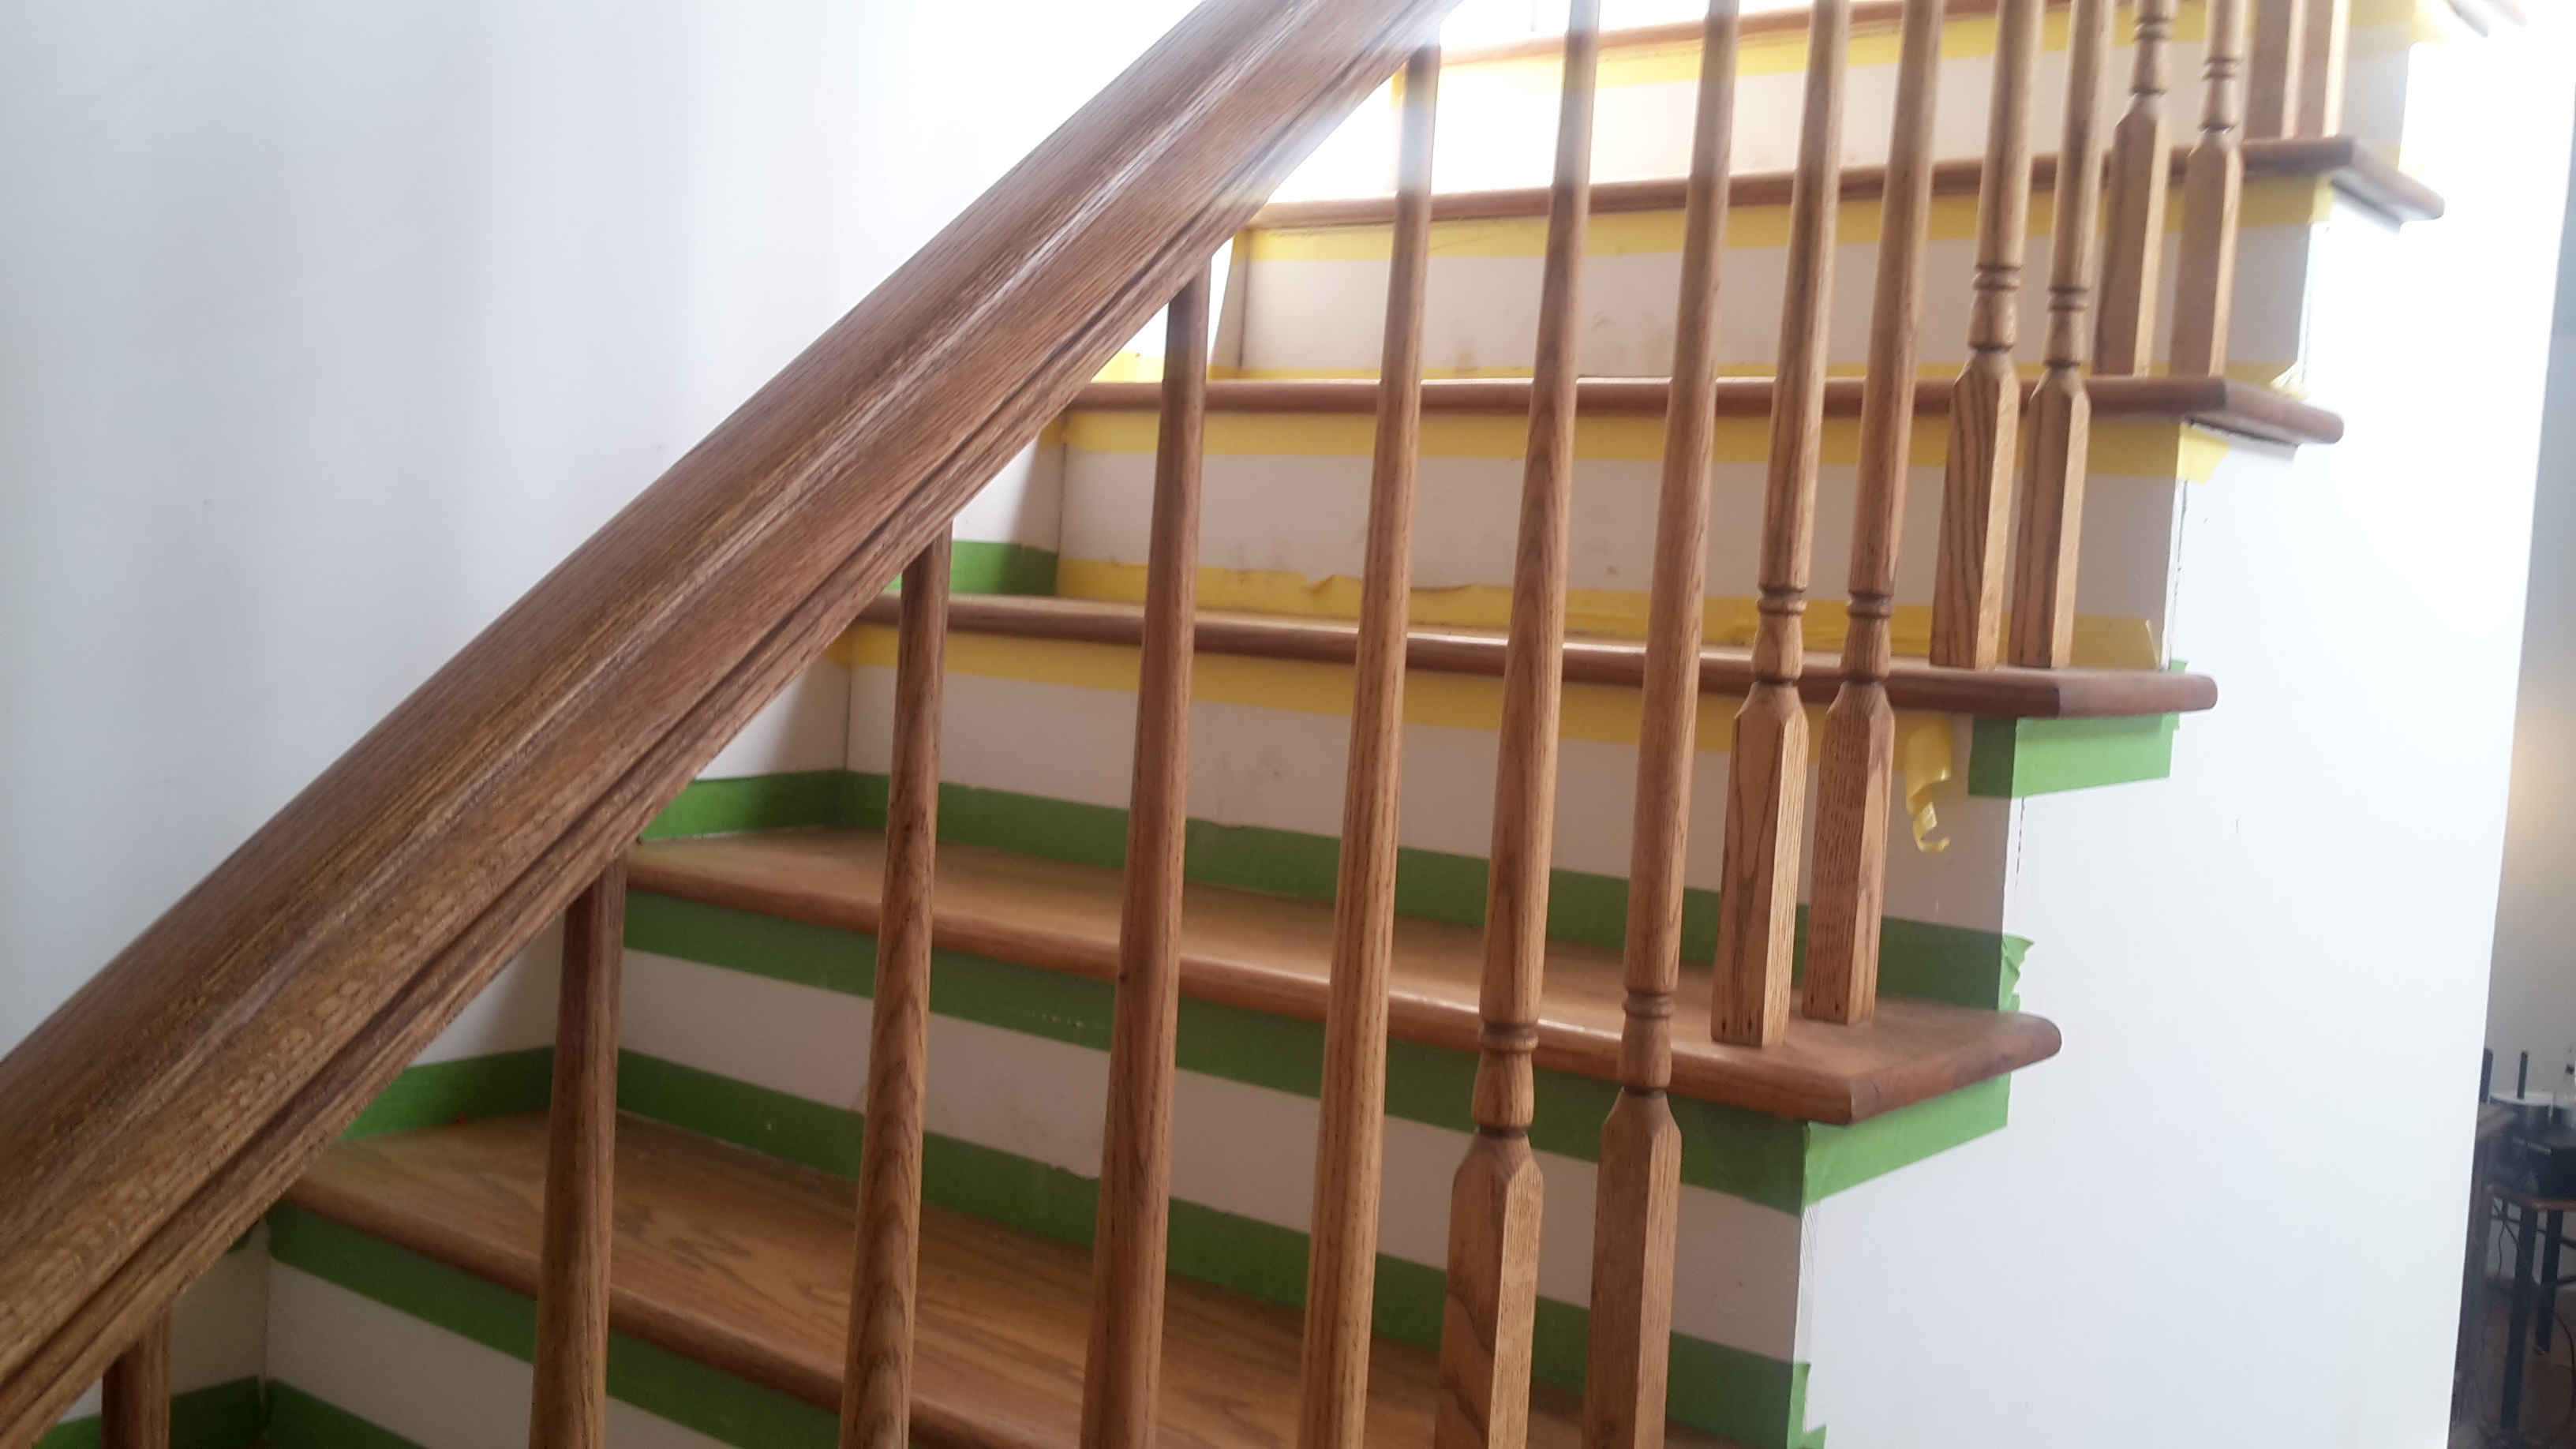 Stair Railing Height For Decks Rs And Interiors Building Codes Handrails Guardrails 2016 Irc